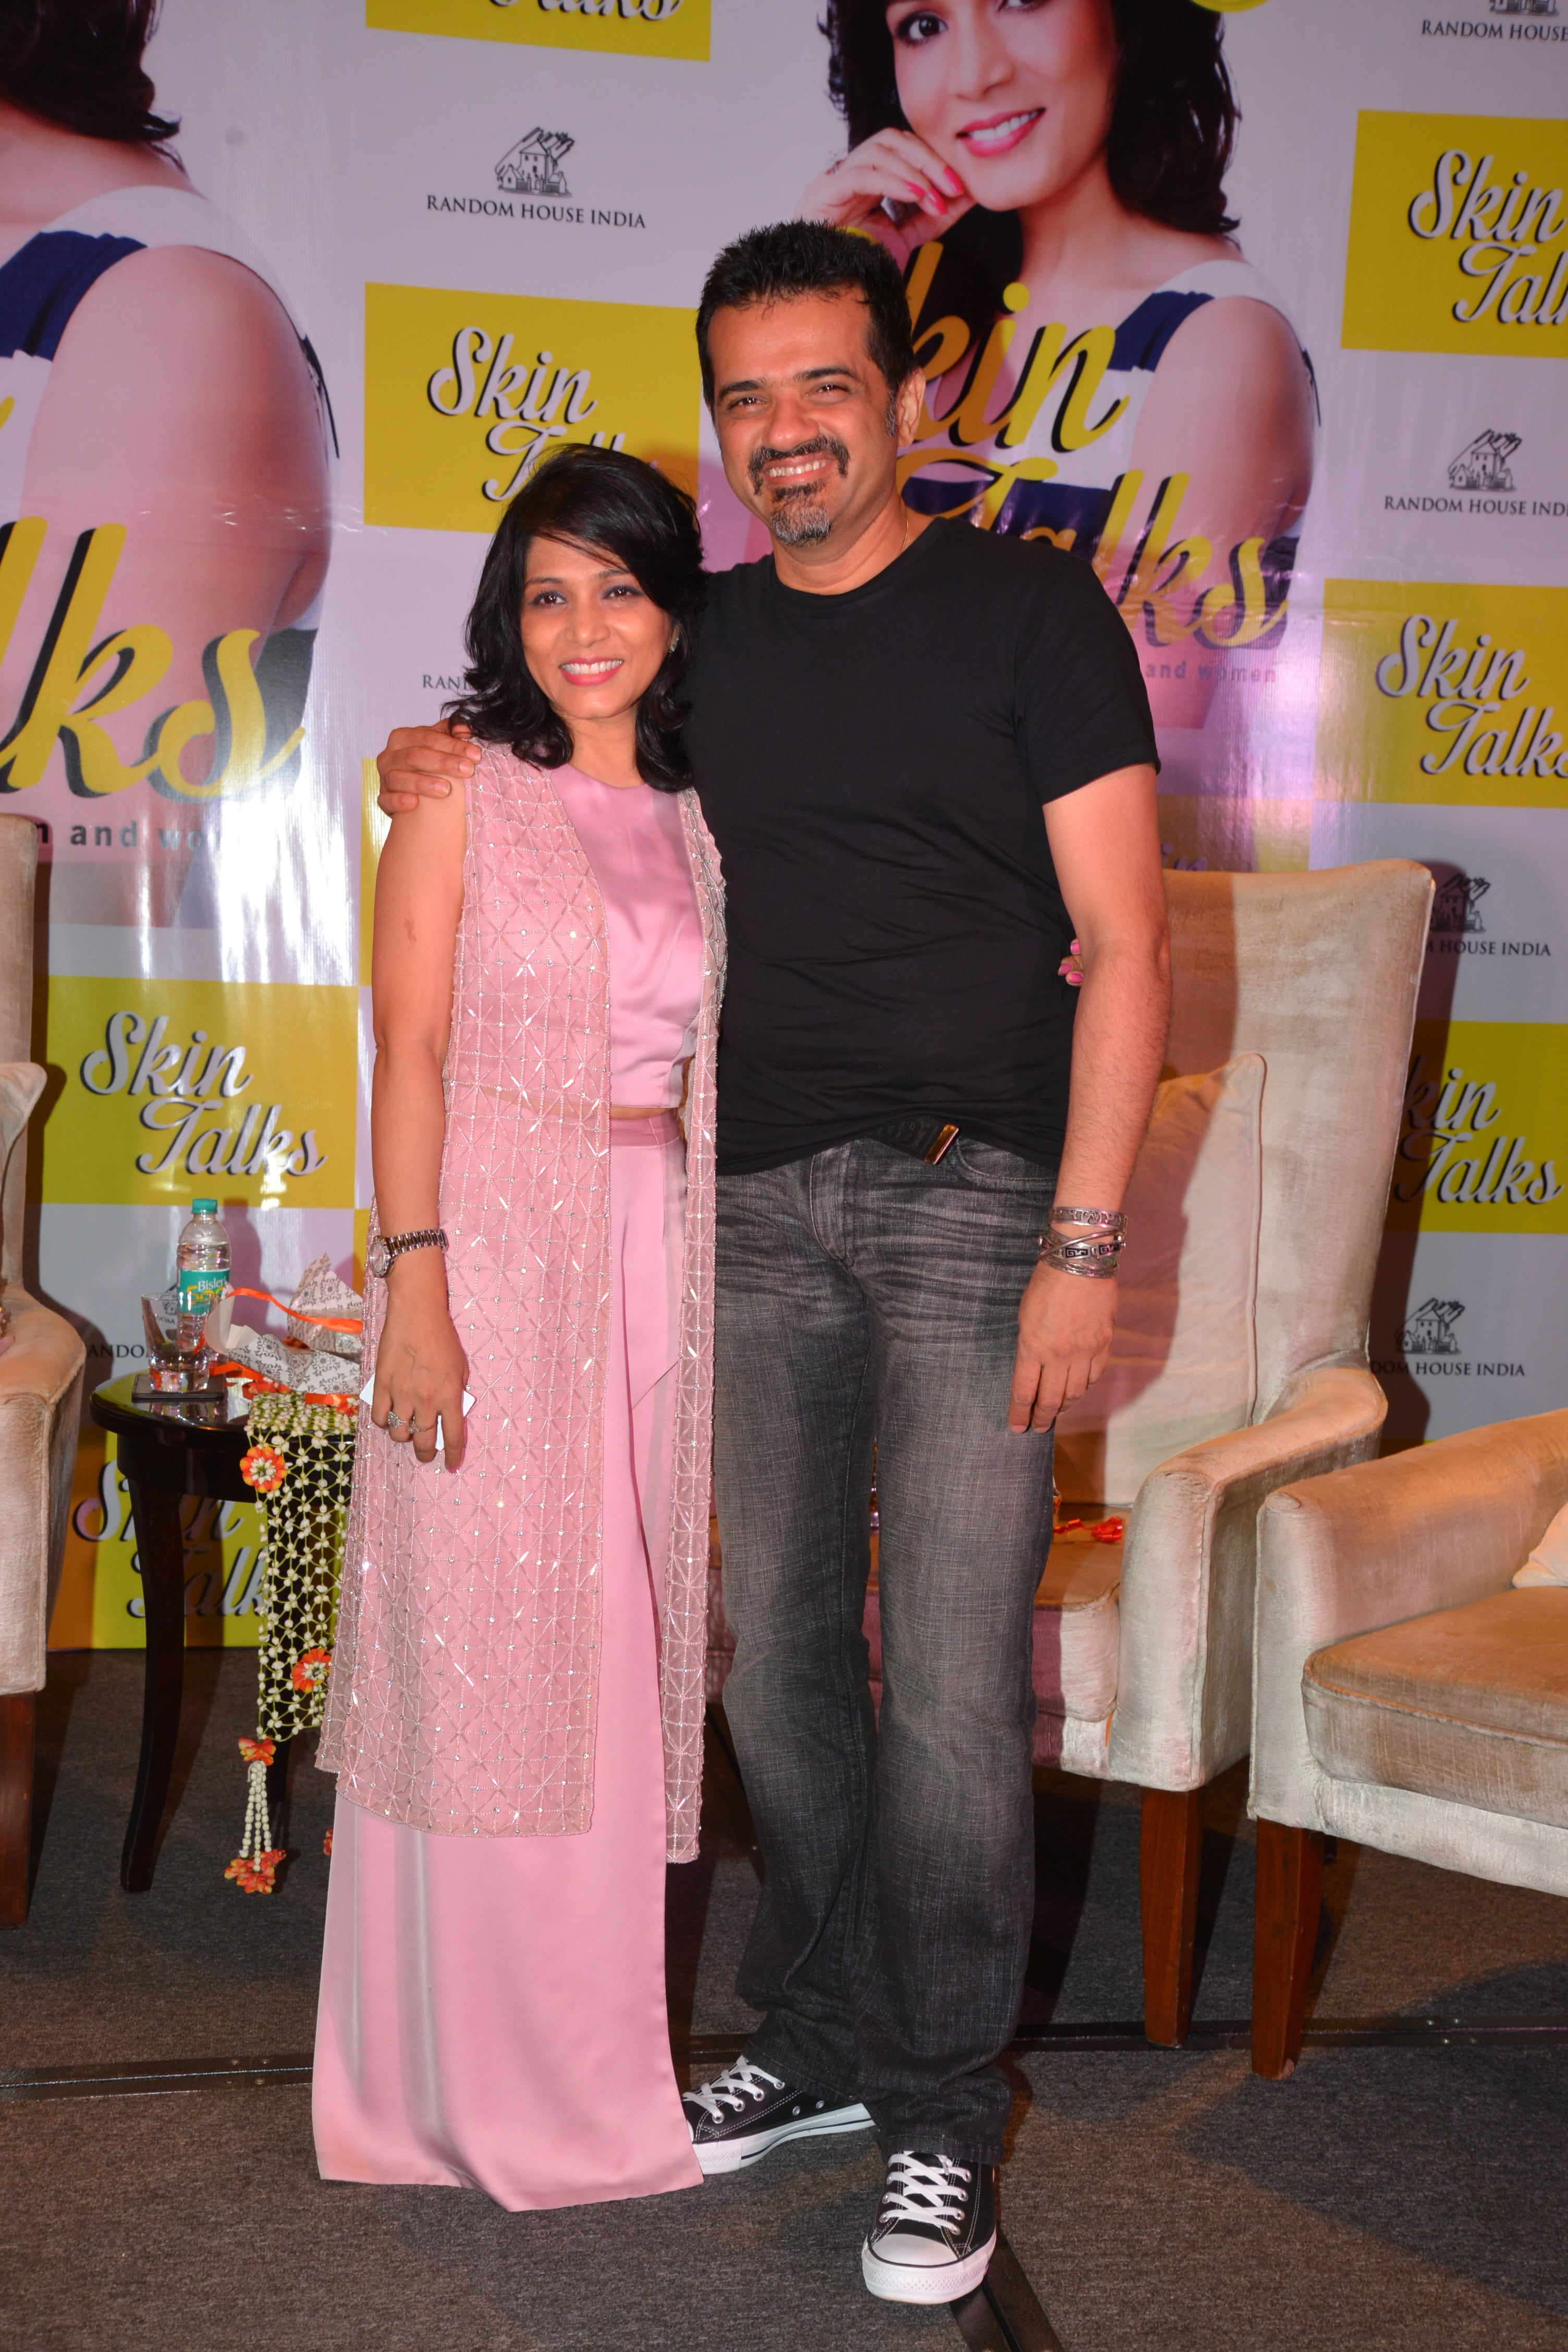 Dr. Jaishree with her good friend EhsaanNoorani at the book launch